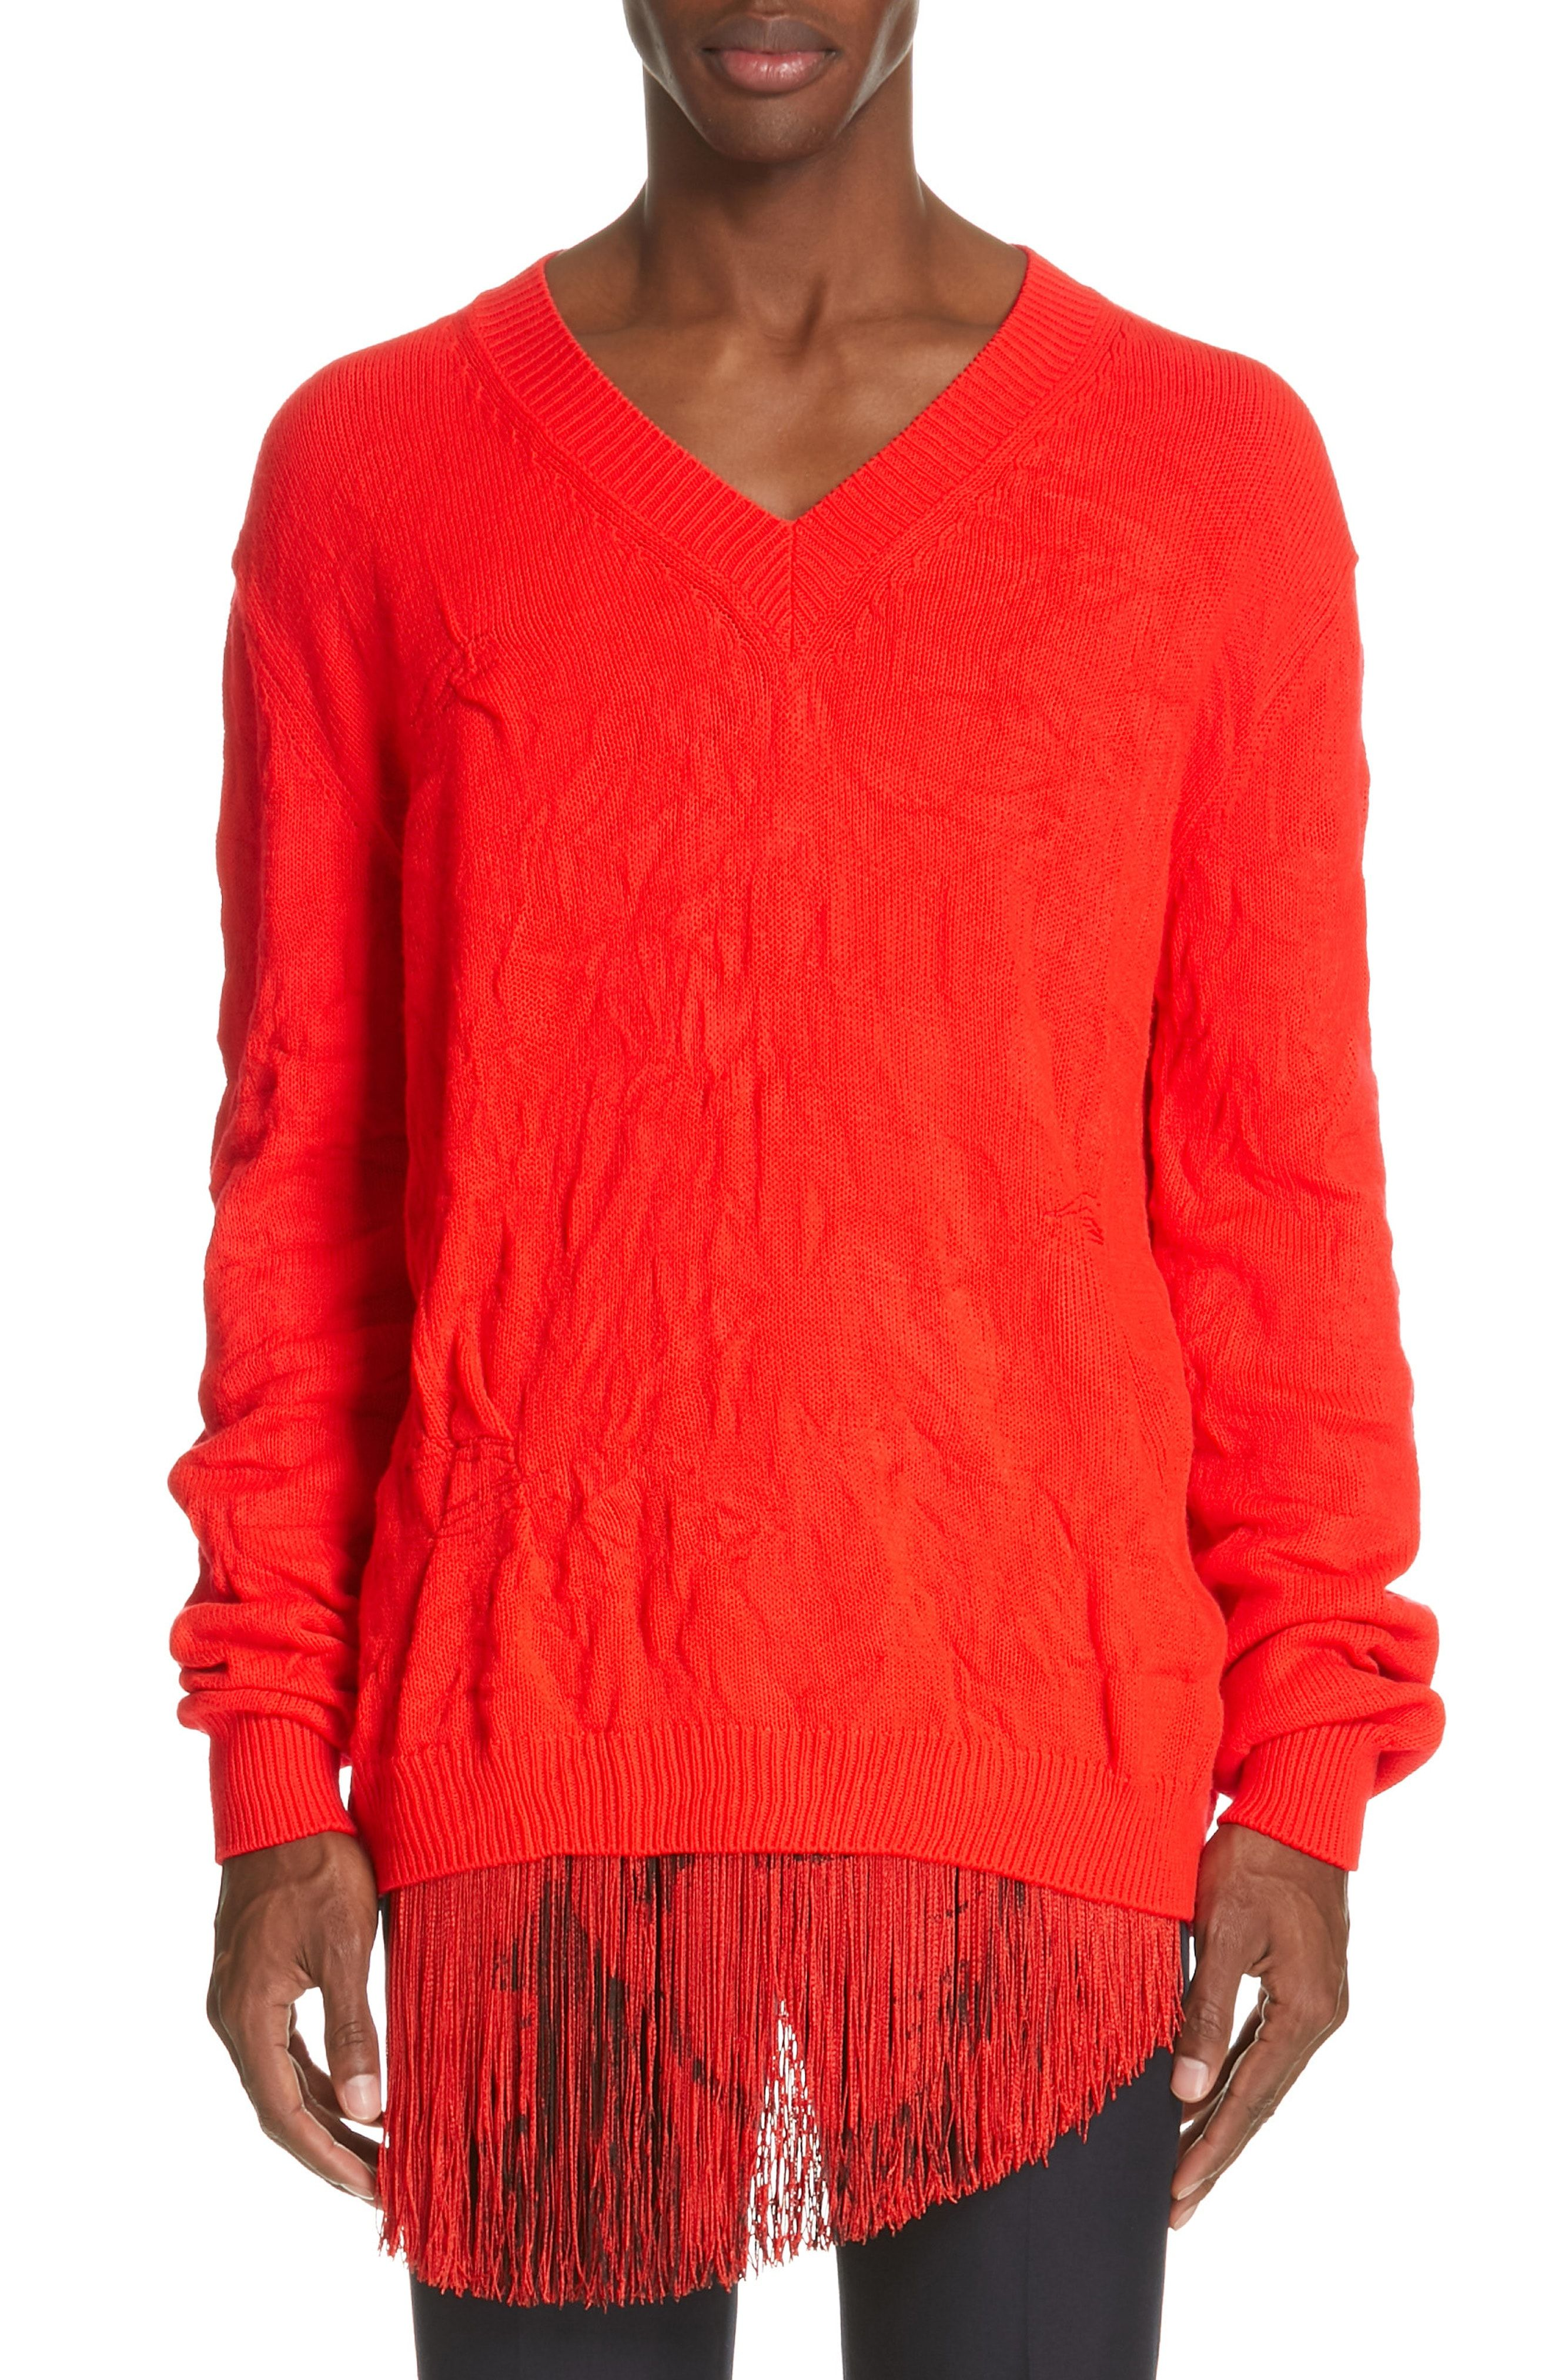 470e84694b CALVIN KLEIN 205W39NYC CABLE KNIT V-NECK SWEATER.  calvinklein205w39nyc   cloth